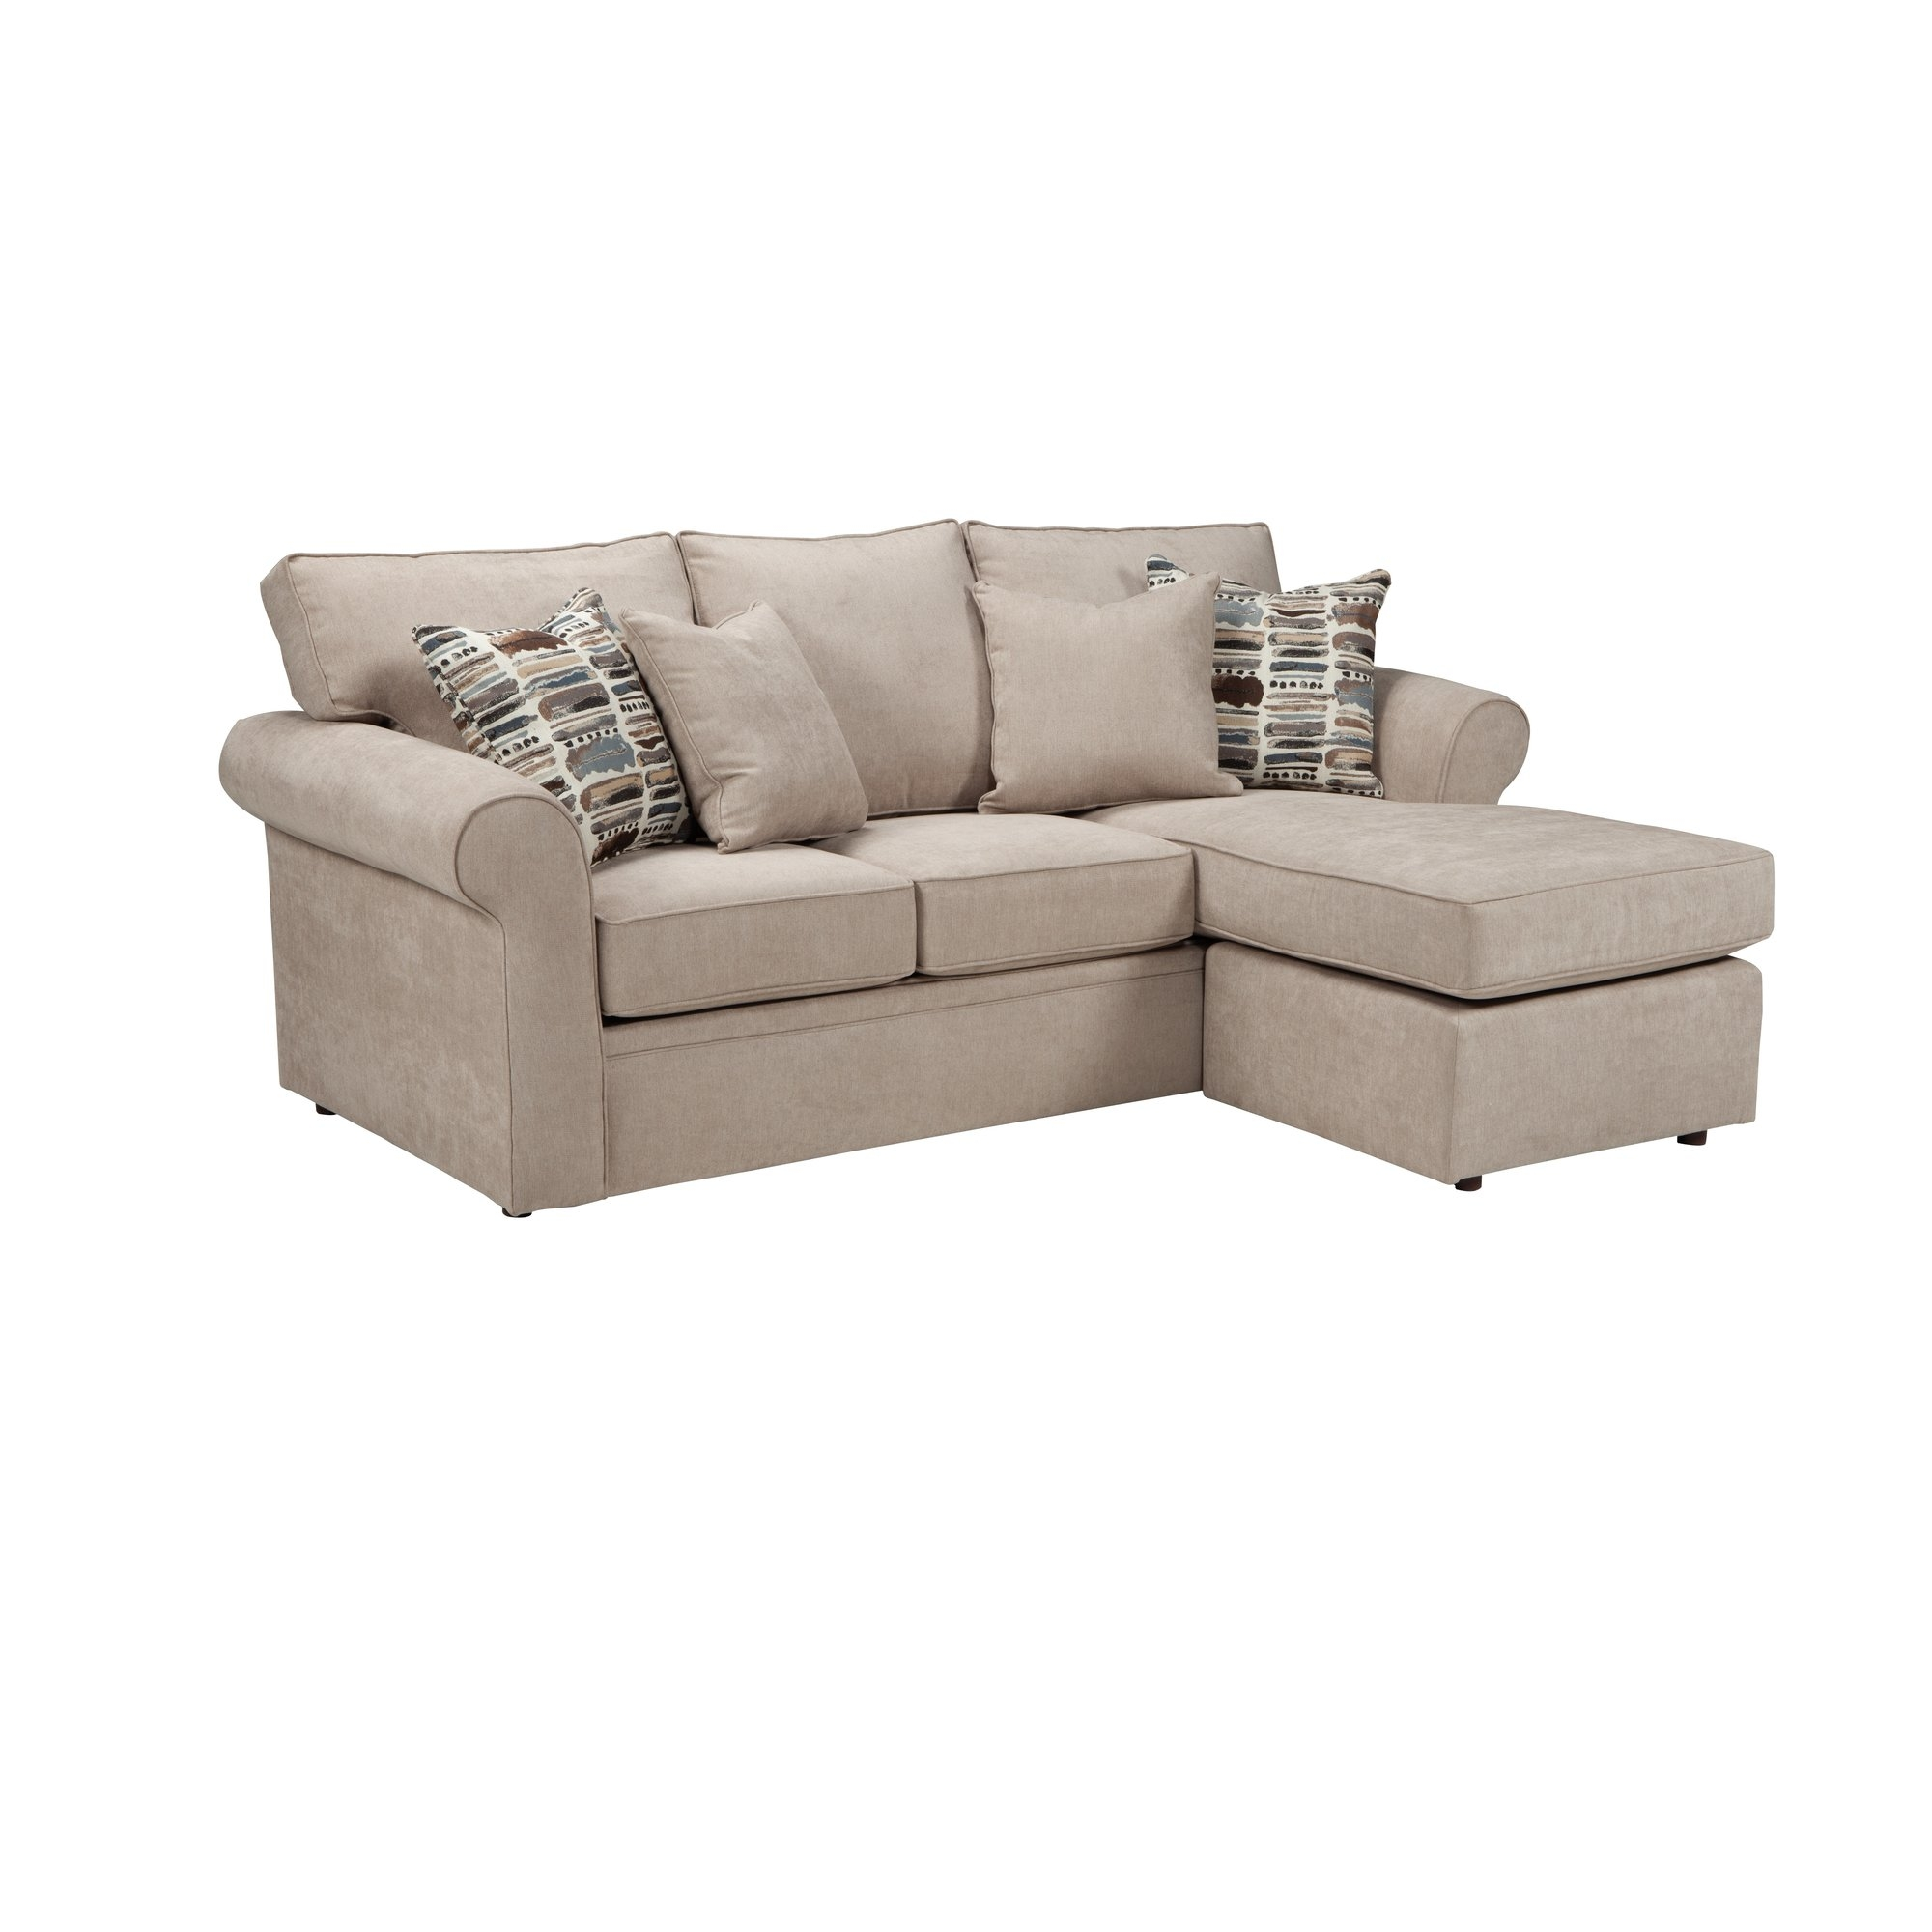 Sleeper Sectionals Youll Love With 3 Piece Sectional Sleeper Sofa (Image 15 of 15)